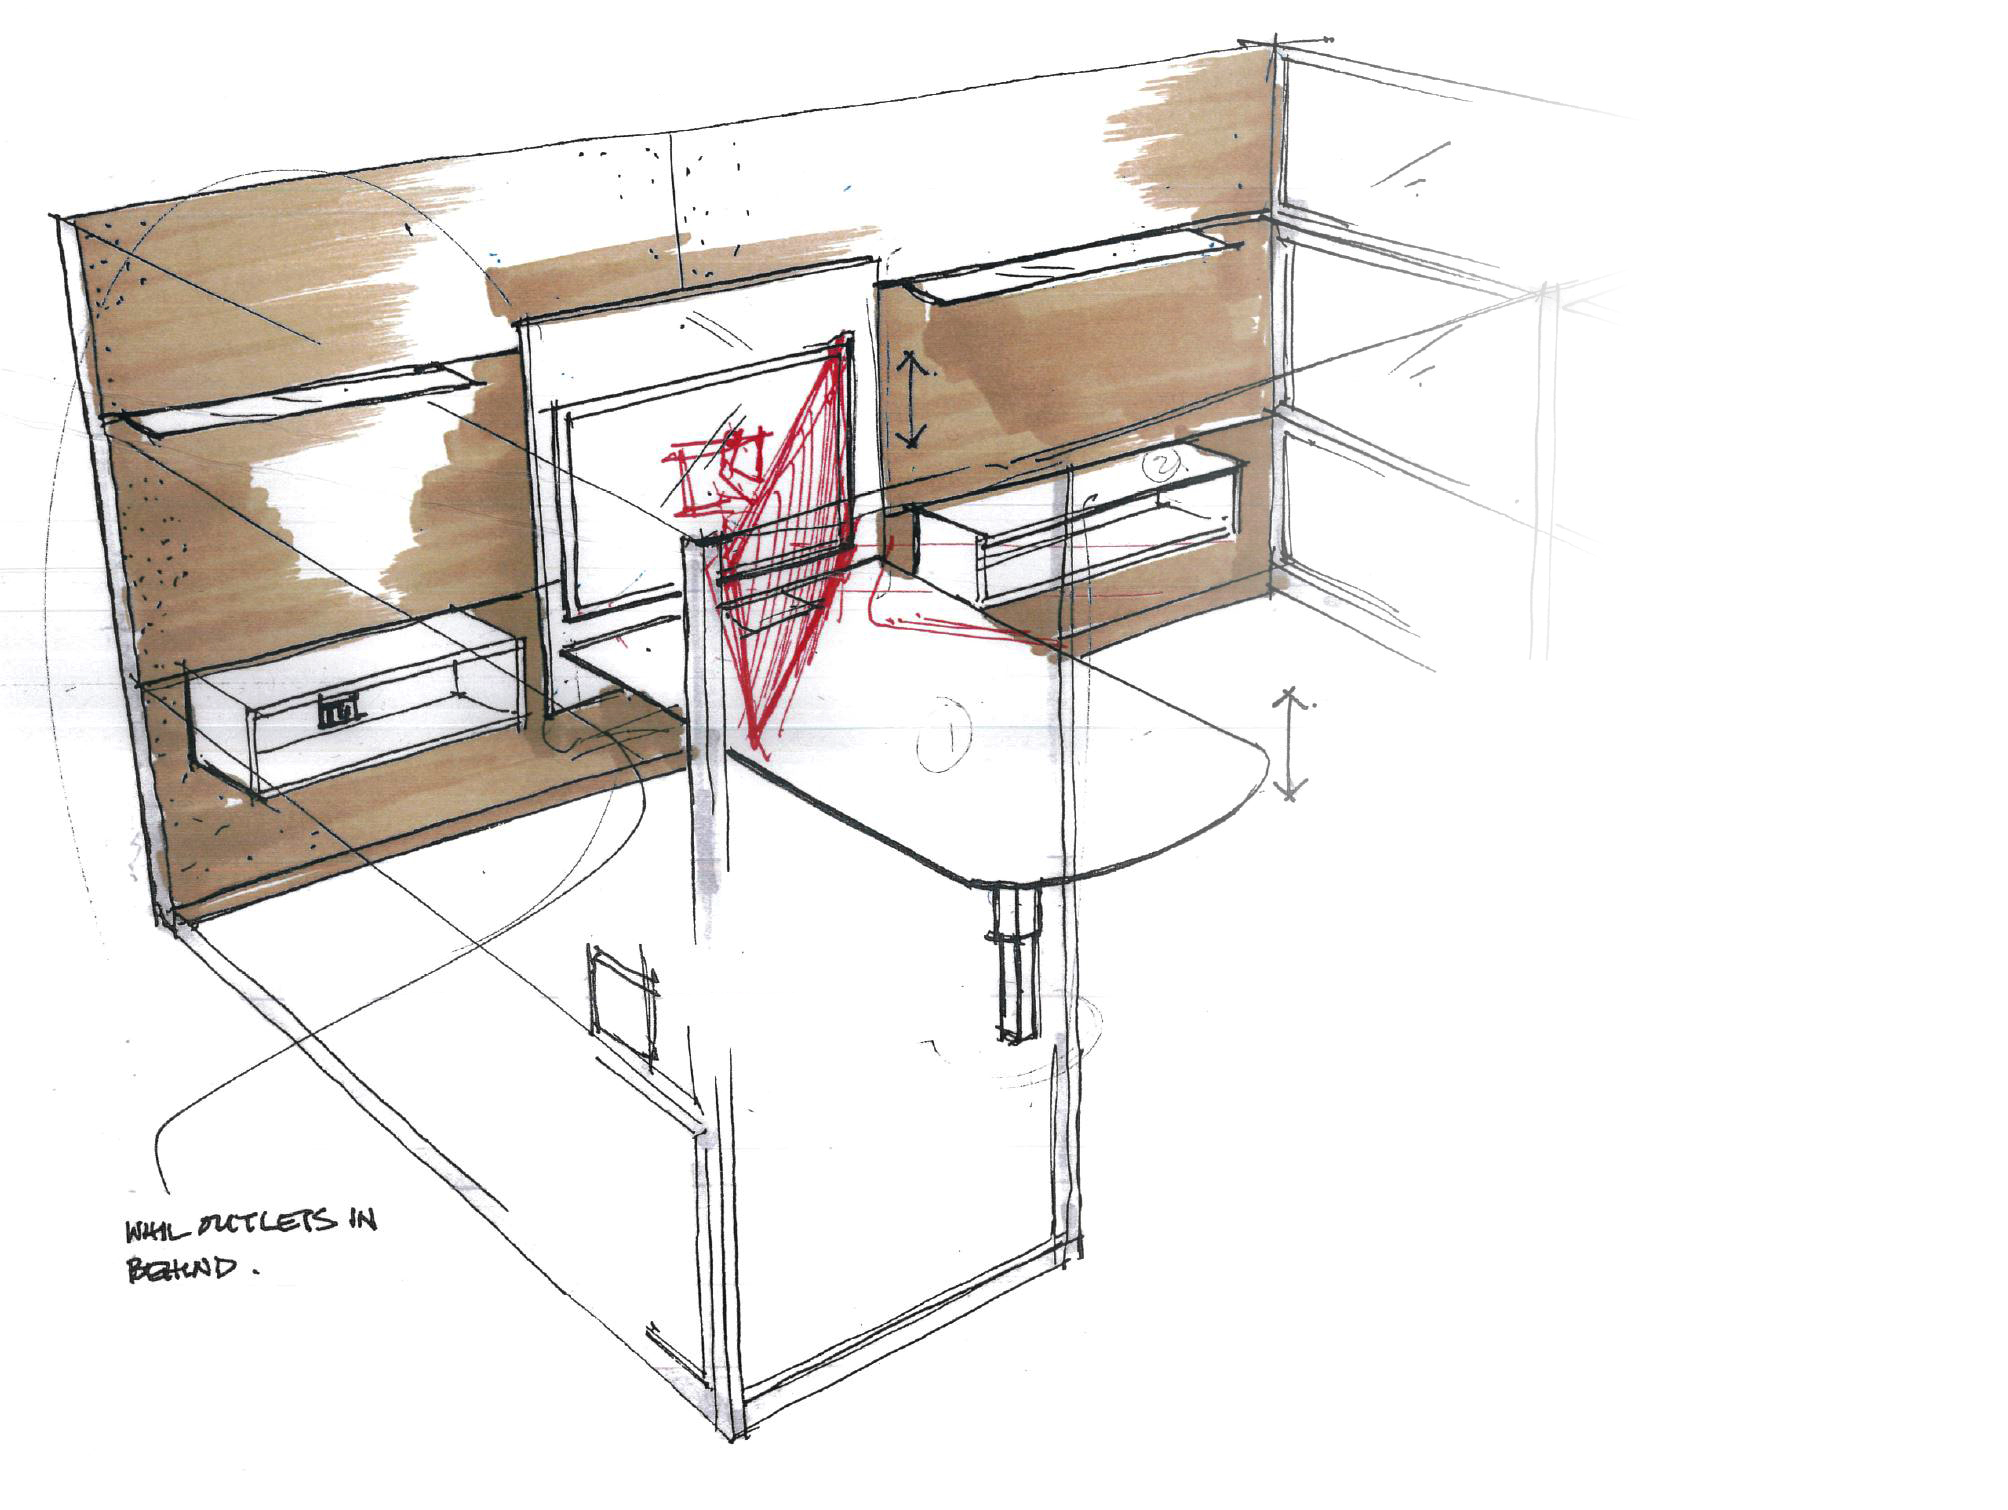 Initial concept sketch to demonstrate the monitor and work surface moving together.